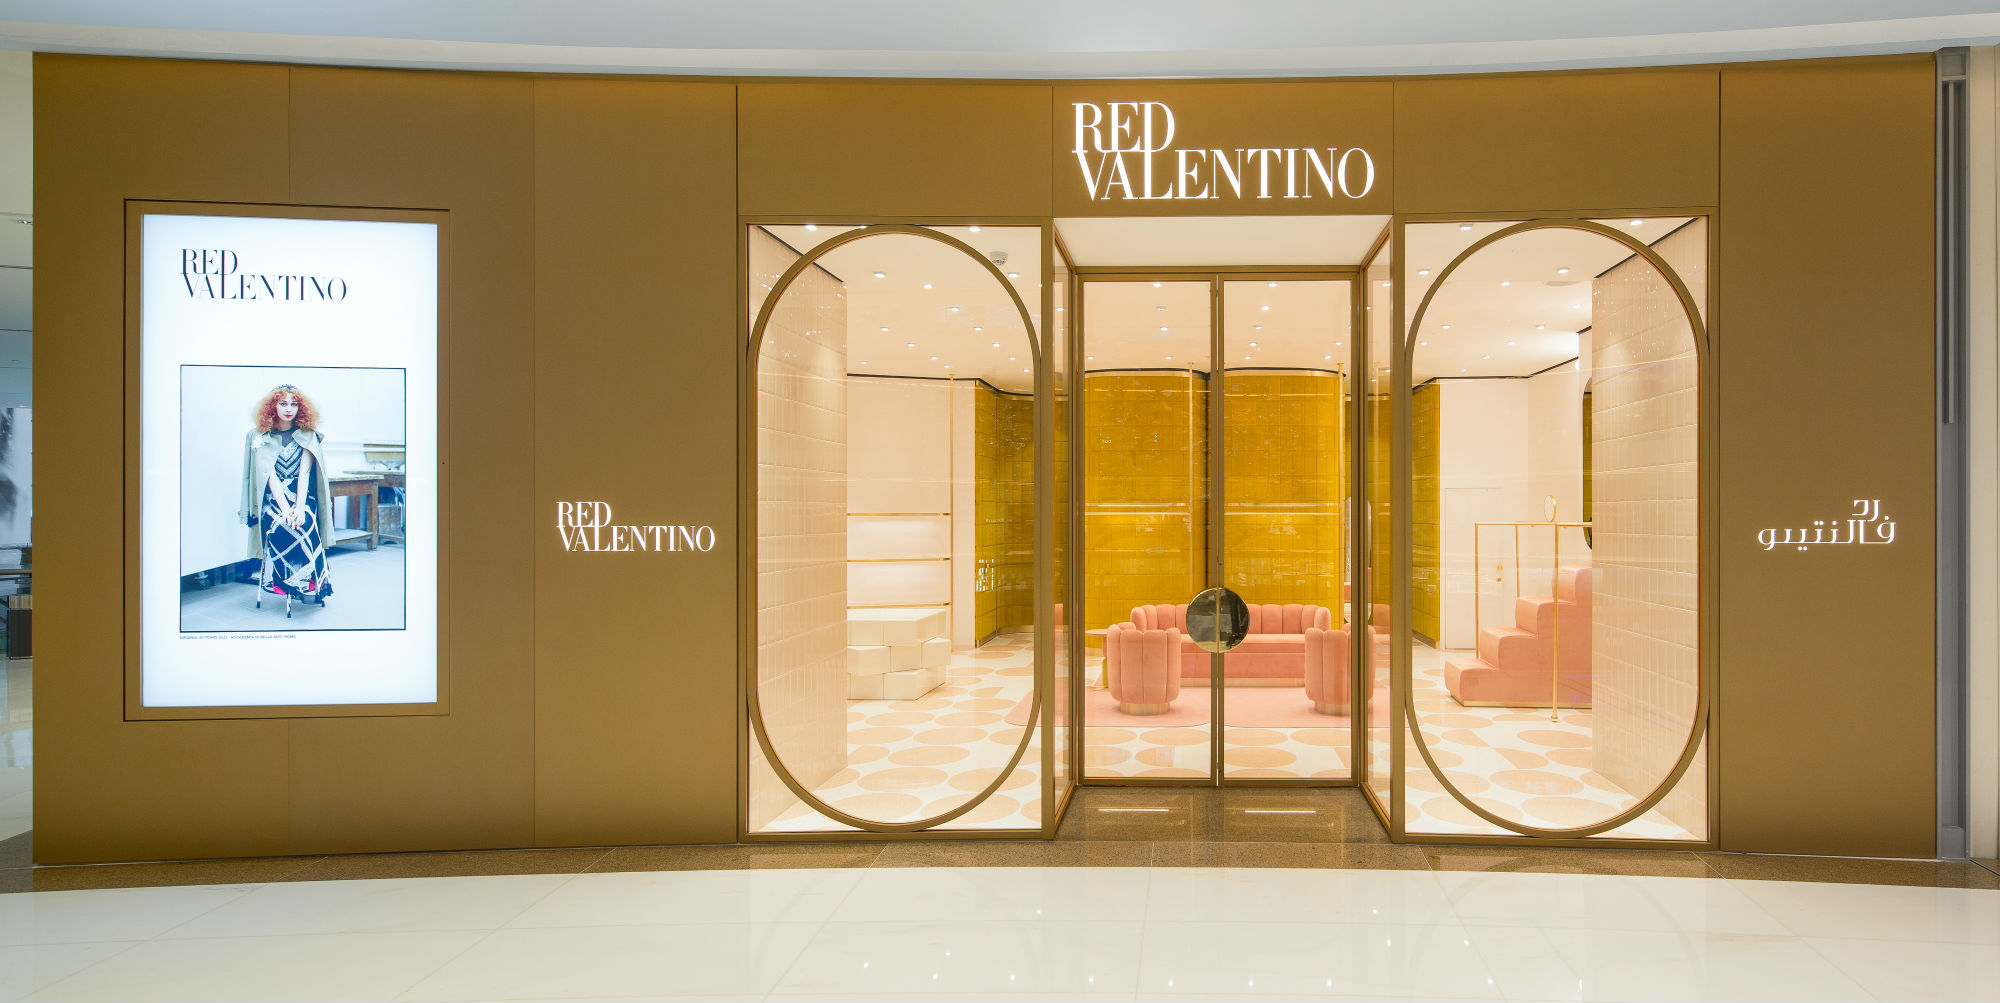 REDValentino is located within Fashion Avenue at The Dubai Mall